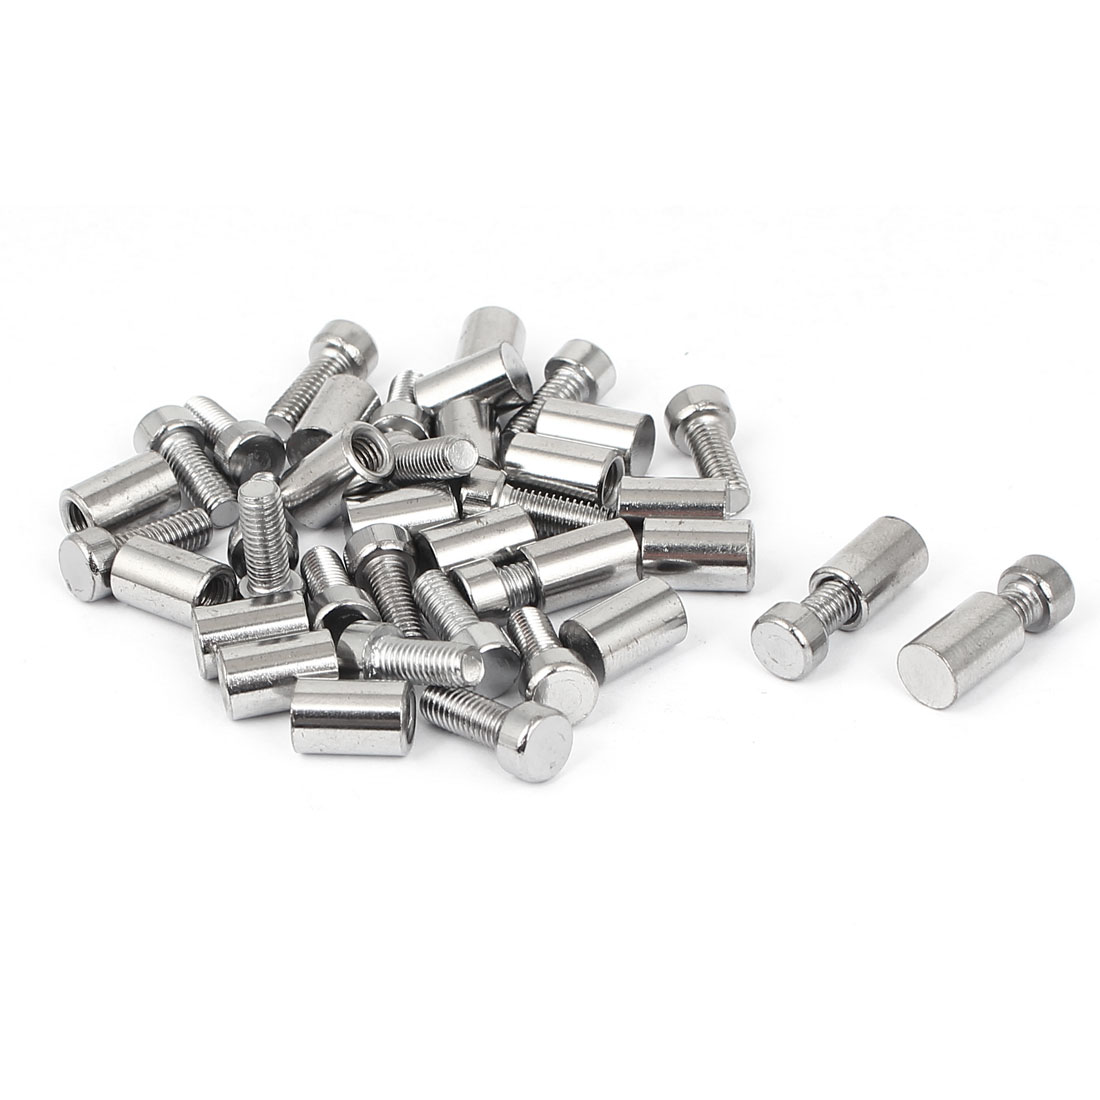 8mm x 20mm Stainless Steel Standoff Pins Screw Glass Picture Frame Hanger 20 Pcs